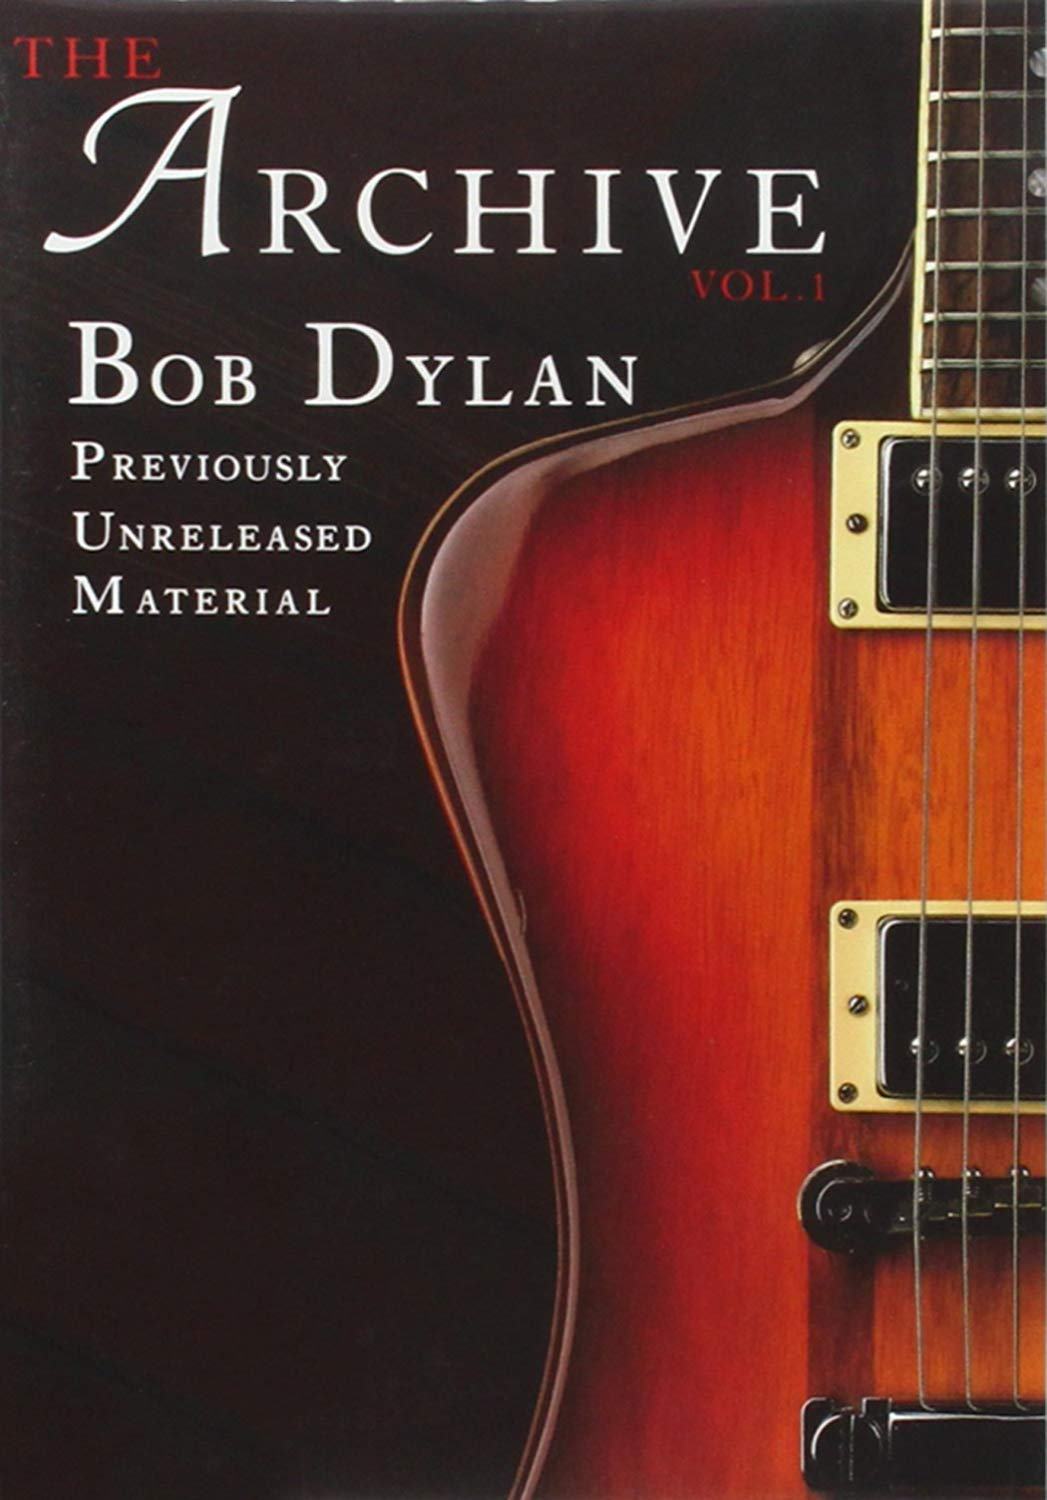 BOB DYLAN - THE ARCHIVE VOL. 1 (DVD)